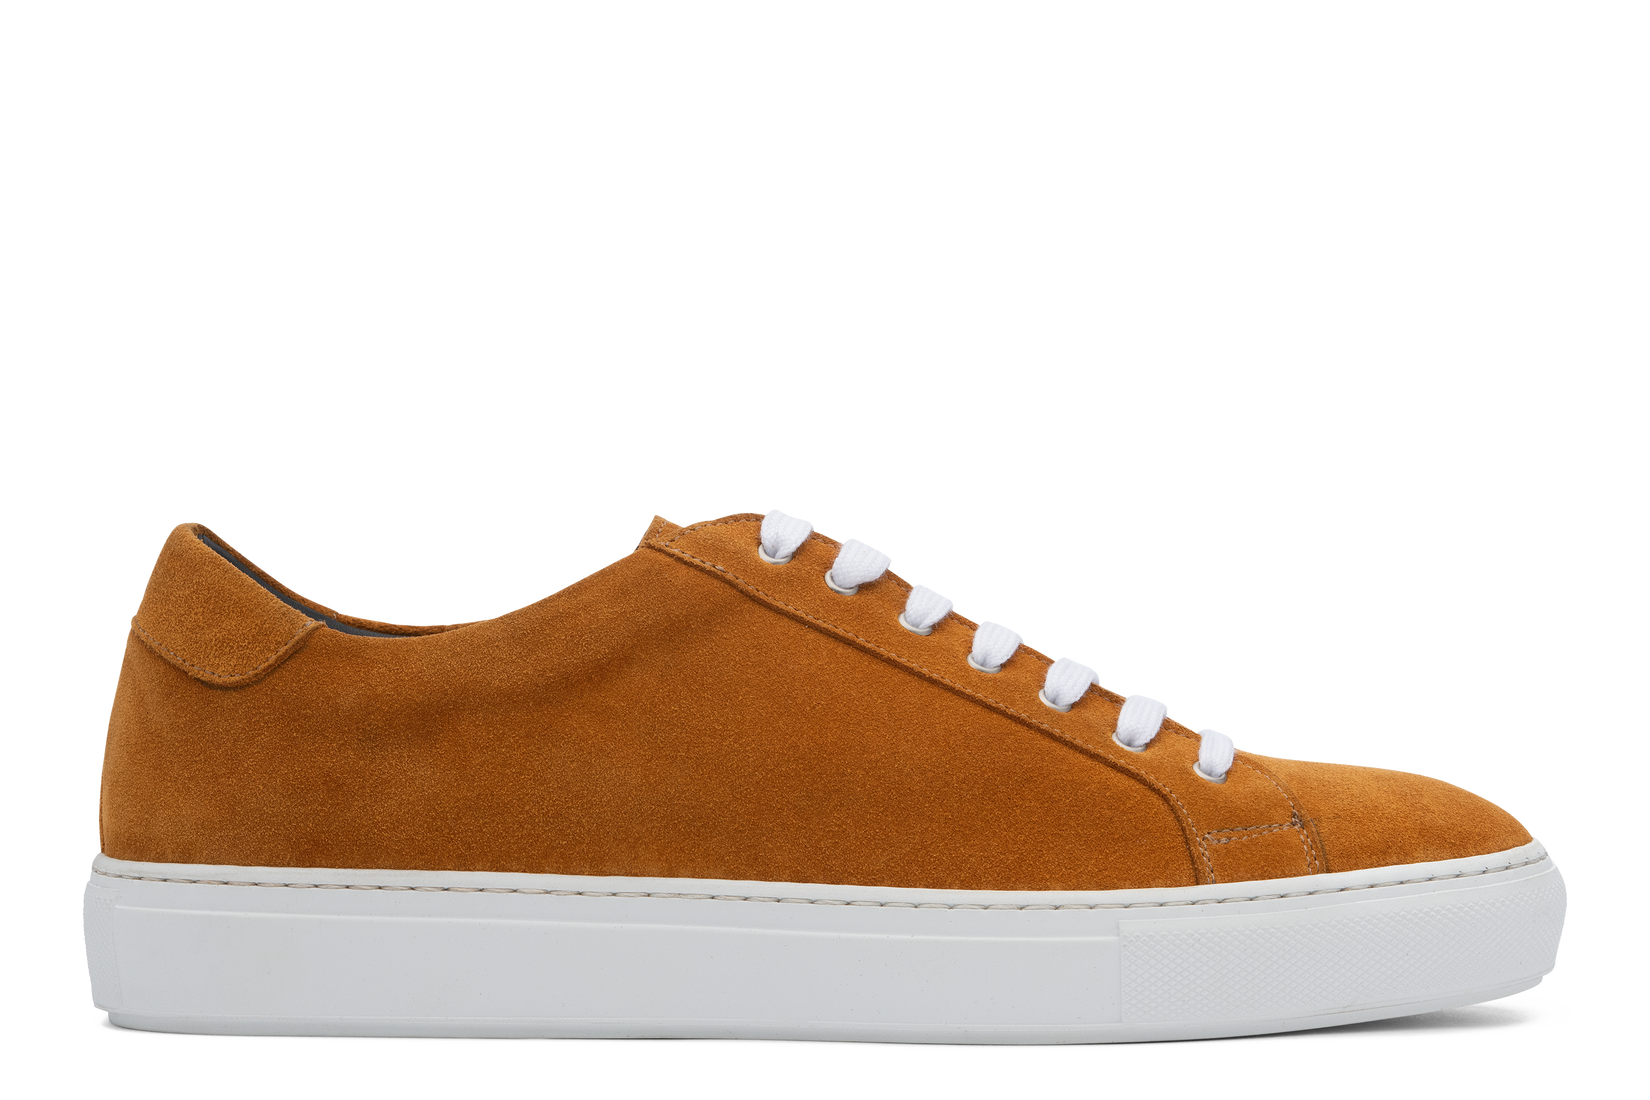 Saturday Lace-Up Sneaker in Marigold